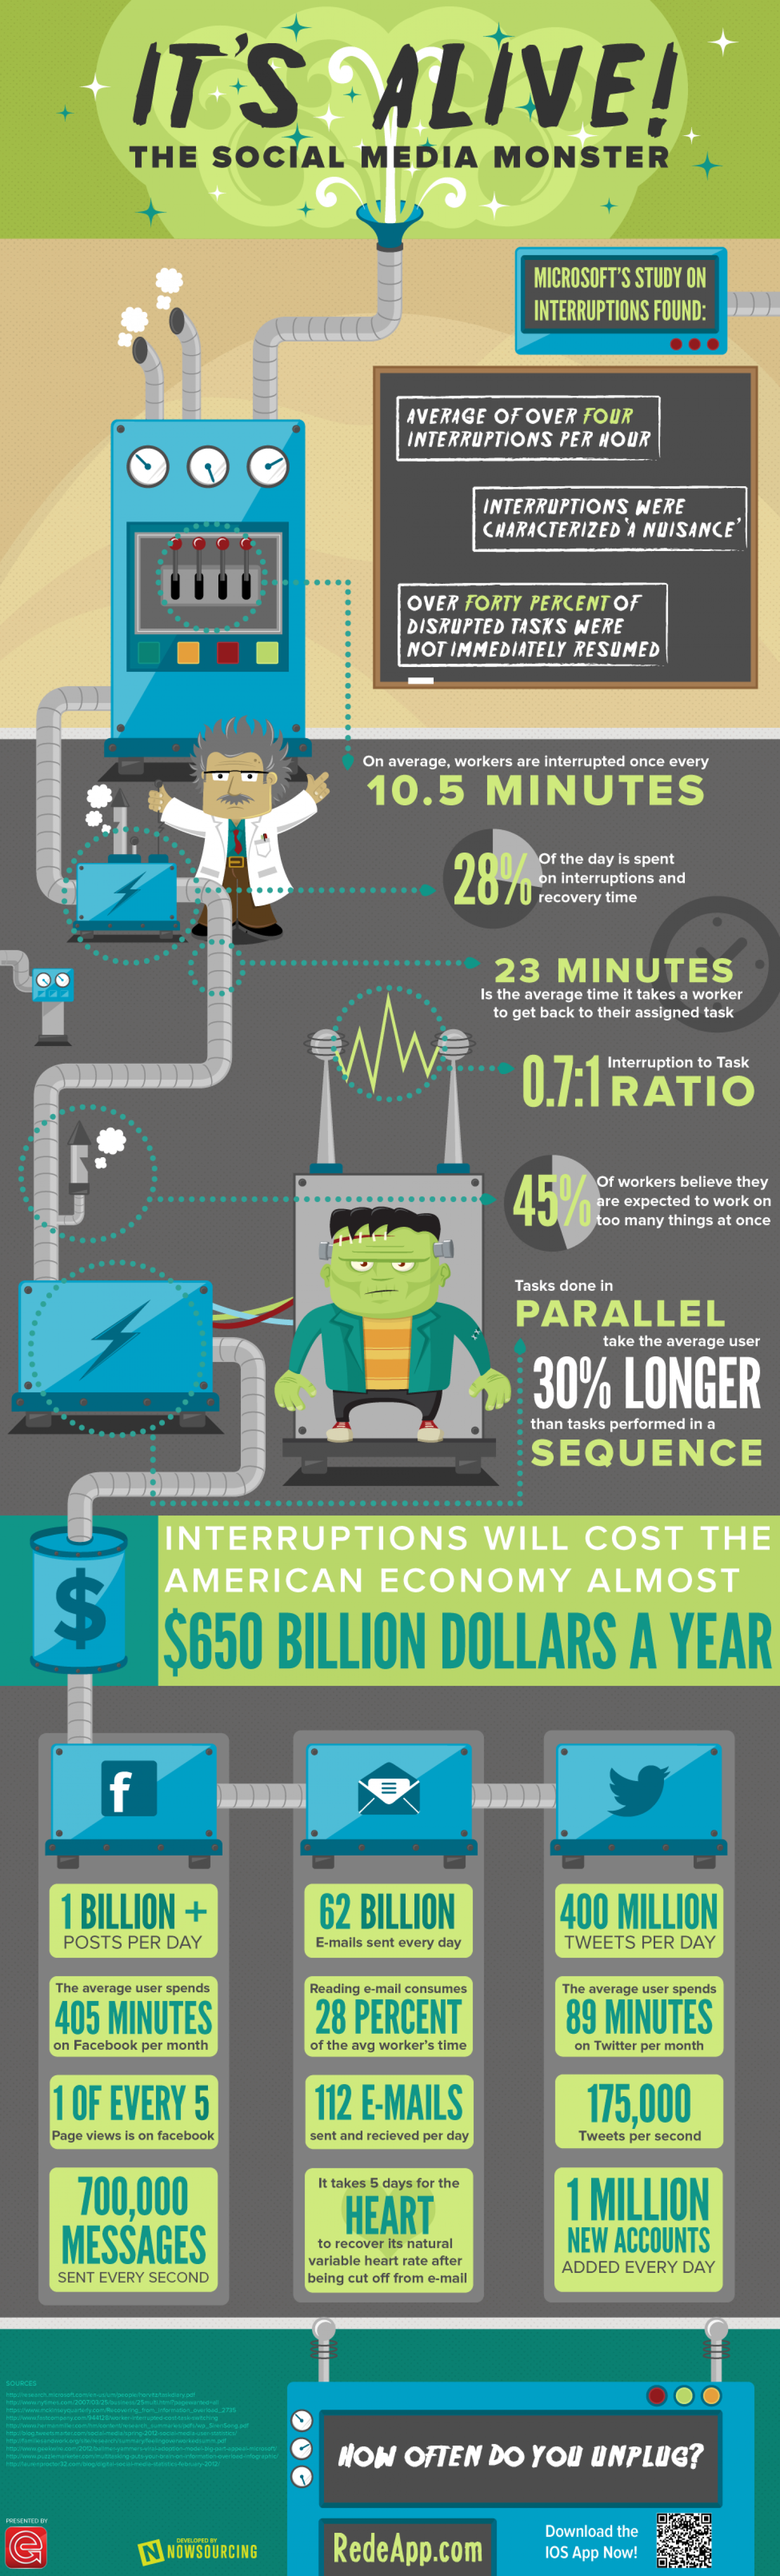 It's Alive! The Social Media Monster Infographic